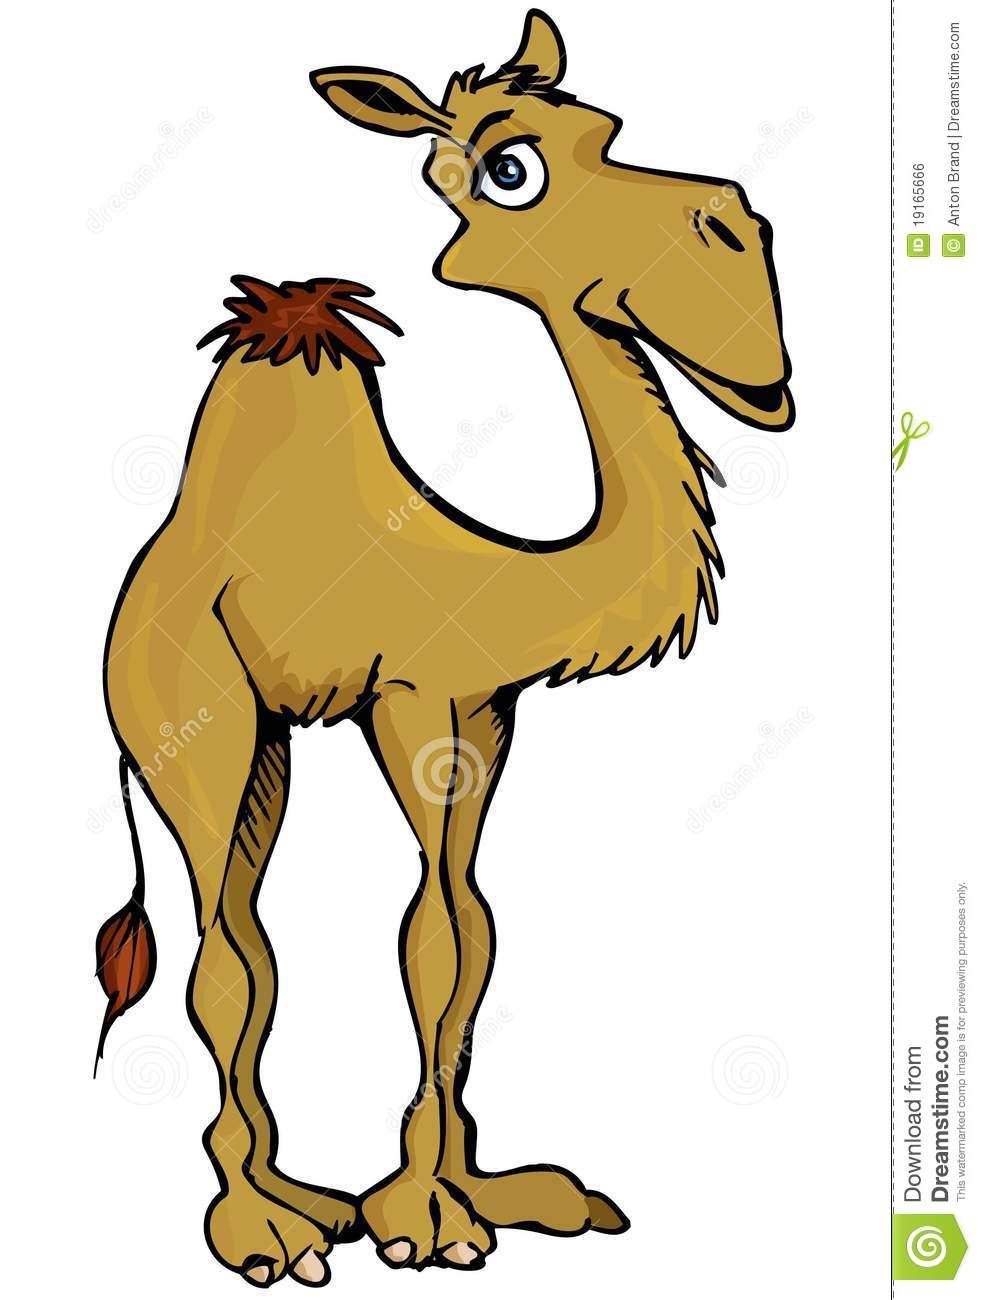 Cartoon Camel Royalty Free Stock Image - Image: 19165666